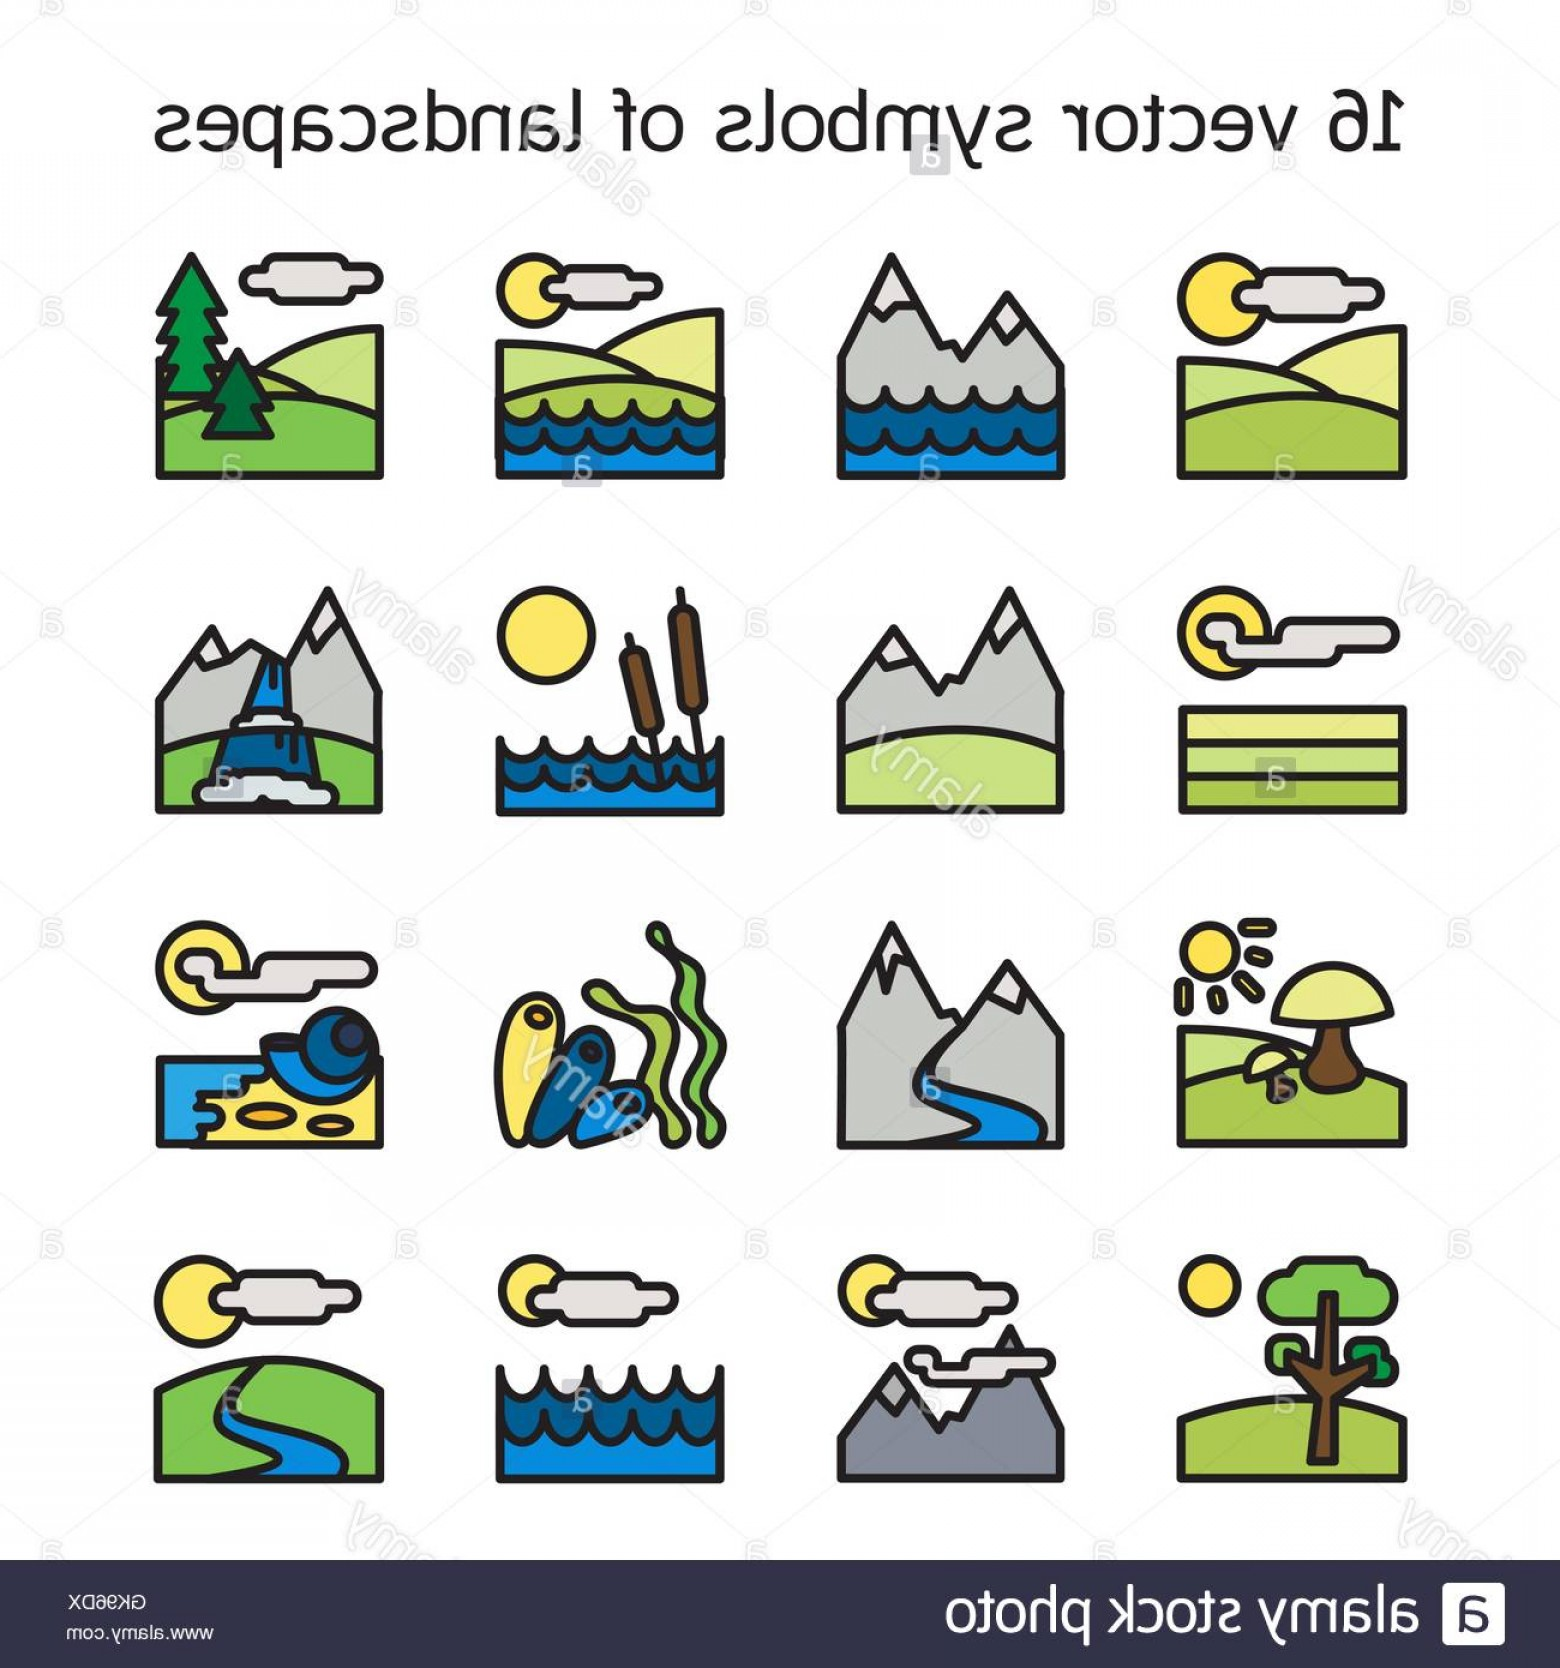 BBB Logo In Vector Form: Stock Photo Landscape Icons Collection Nature Symbols And Paysages In Rectangle